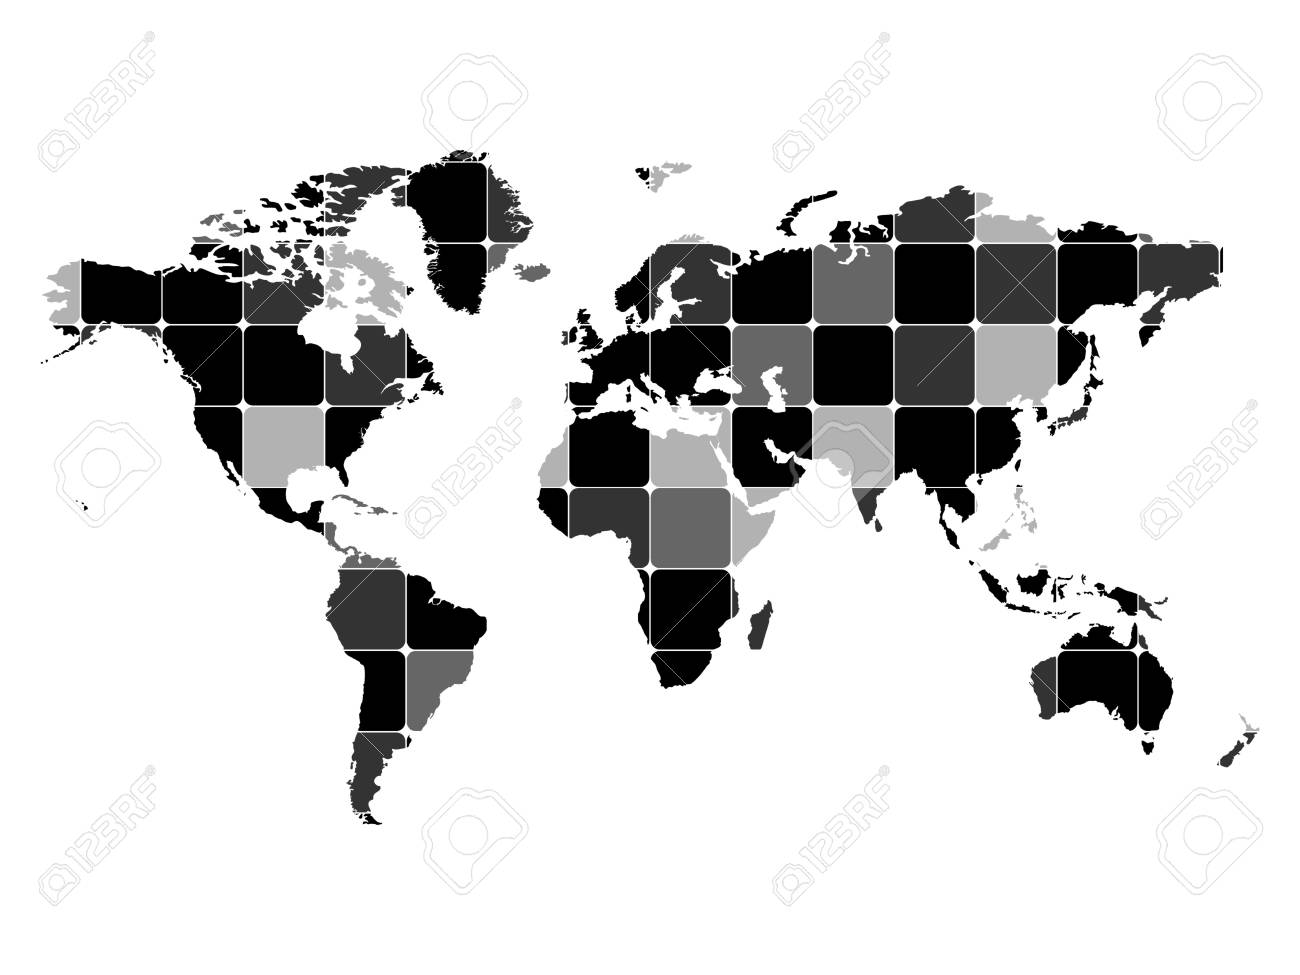 Abstract world map vector illustration royalty free cliparts abstract world map vector illustration stock vector 10706036 gumiabroncs Choice Image